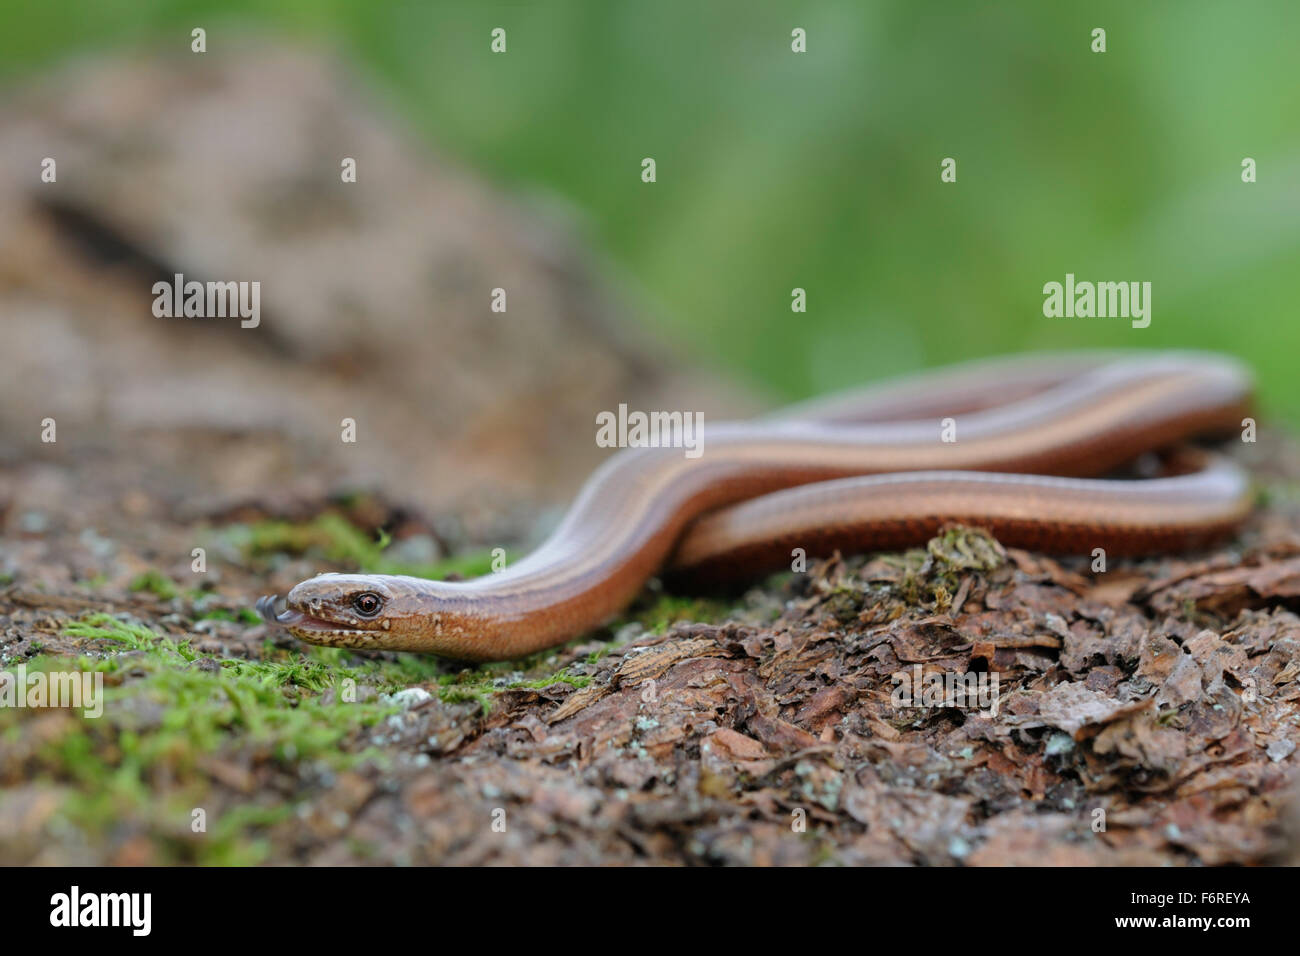 Adult Slow Worm / Blindschleiche ( Anguis fragilis ) laying on natural ground darting its tongue in and out. Stock Photo